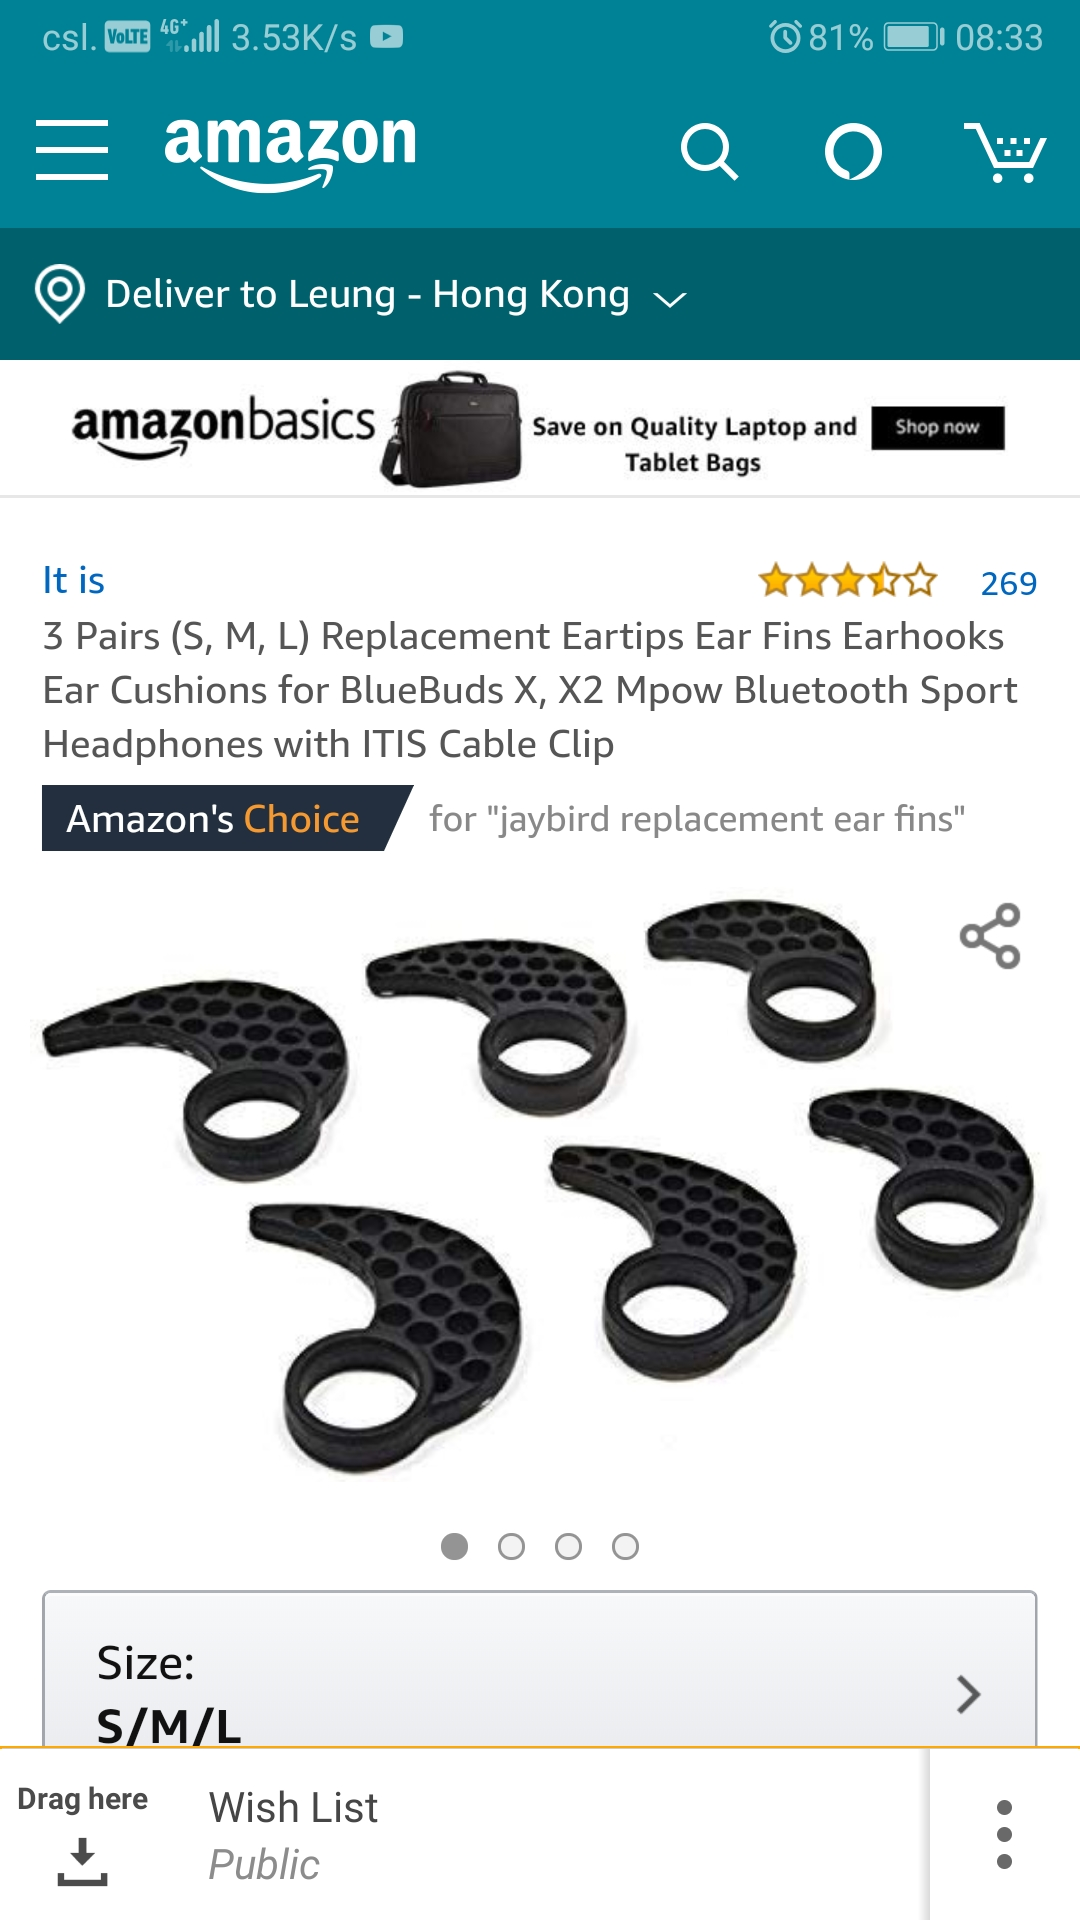 Screenshot_20190605_083344_com.amazon.mShop.android.shopping.jpg